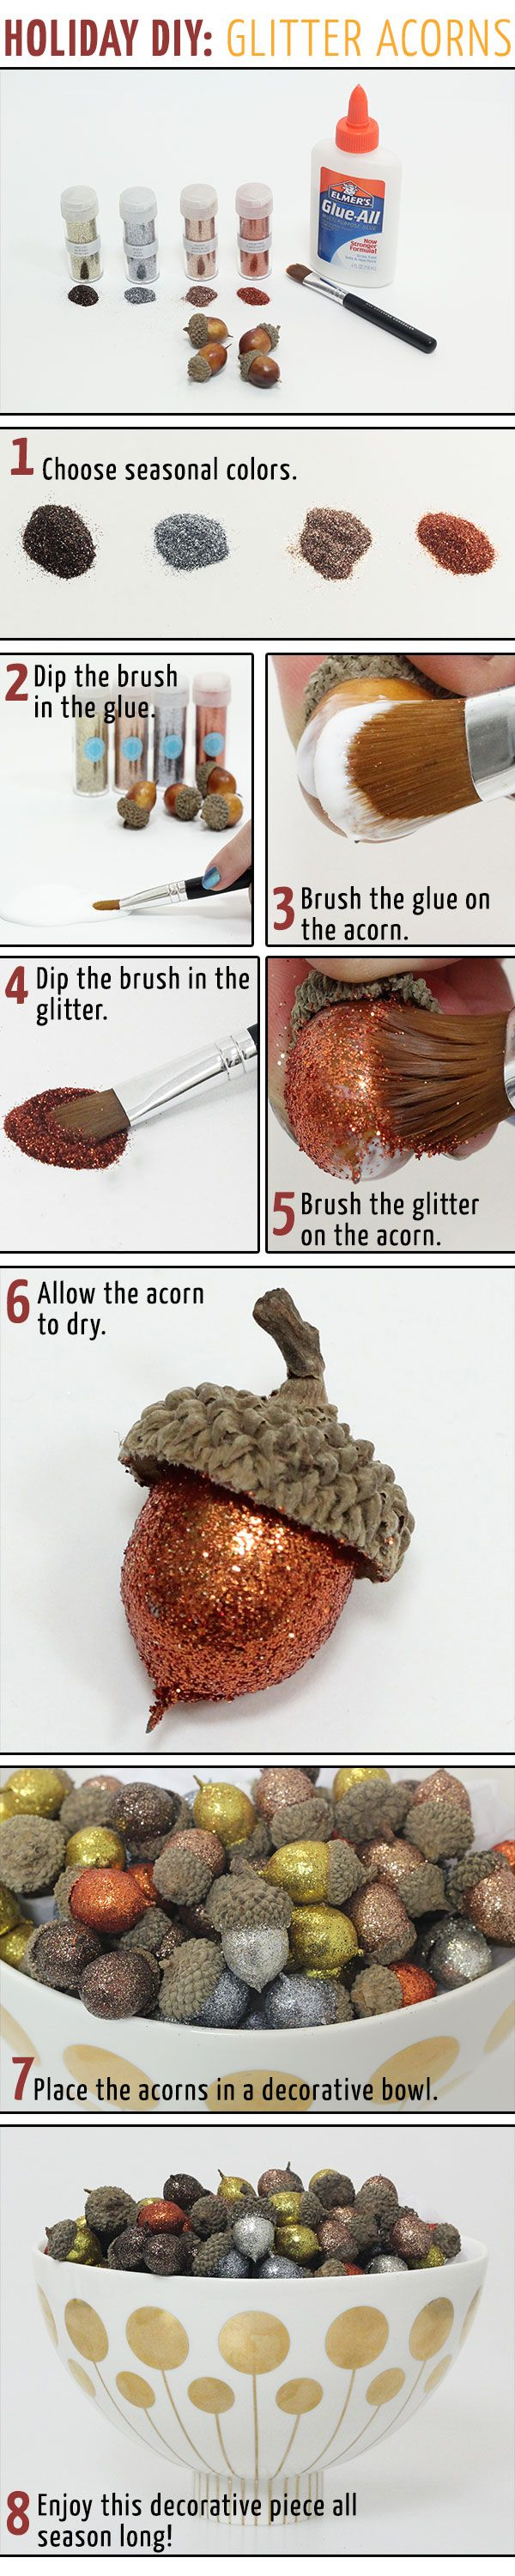 Holiday DIY: Glitter Acorns